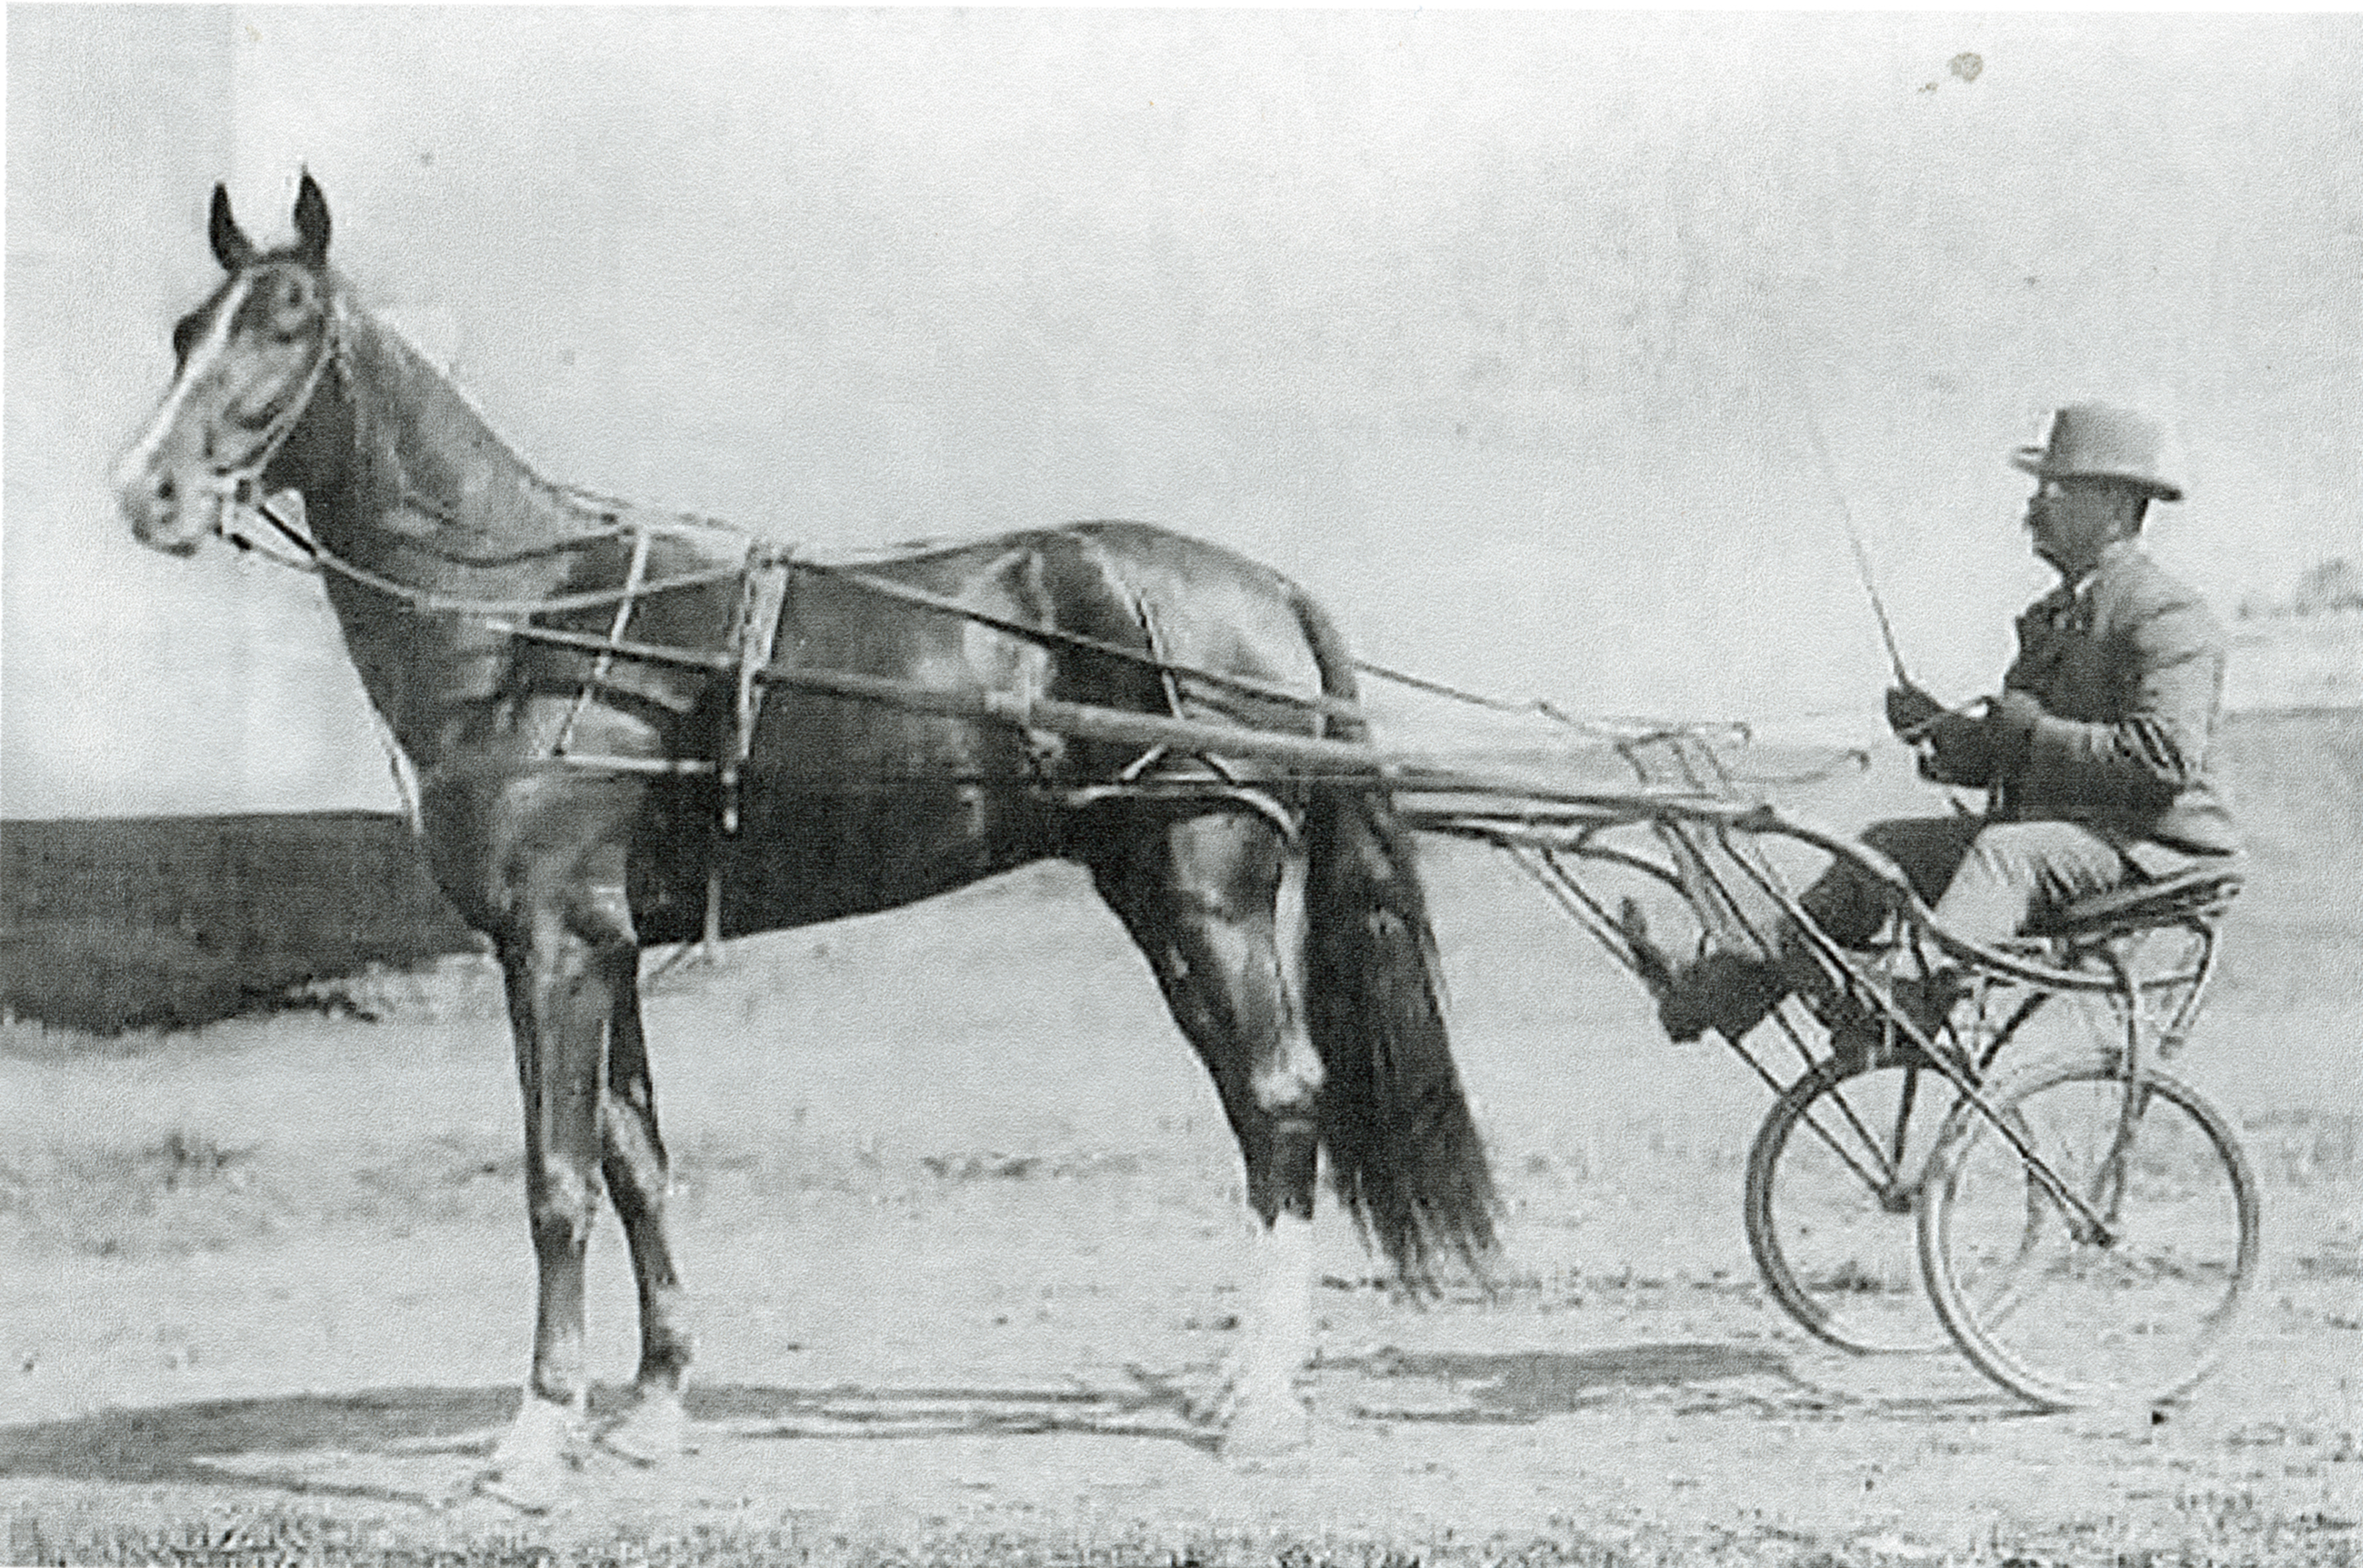 Peter Stirling who won the Kentucky Futurity in 1901 with his trainer Mr. Chandler